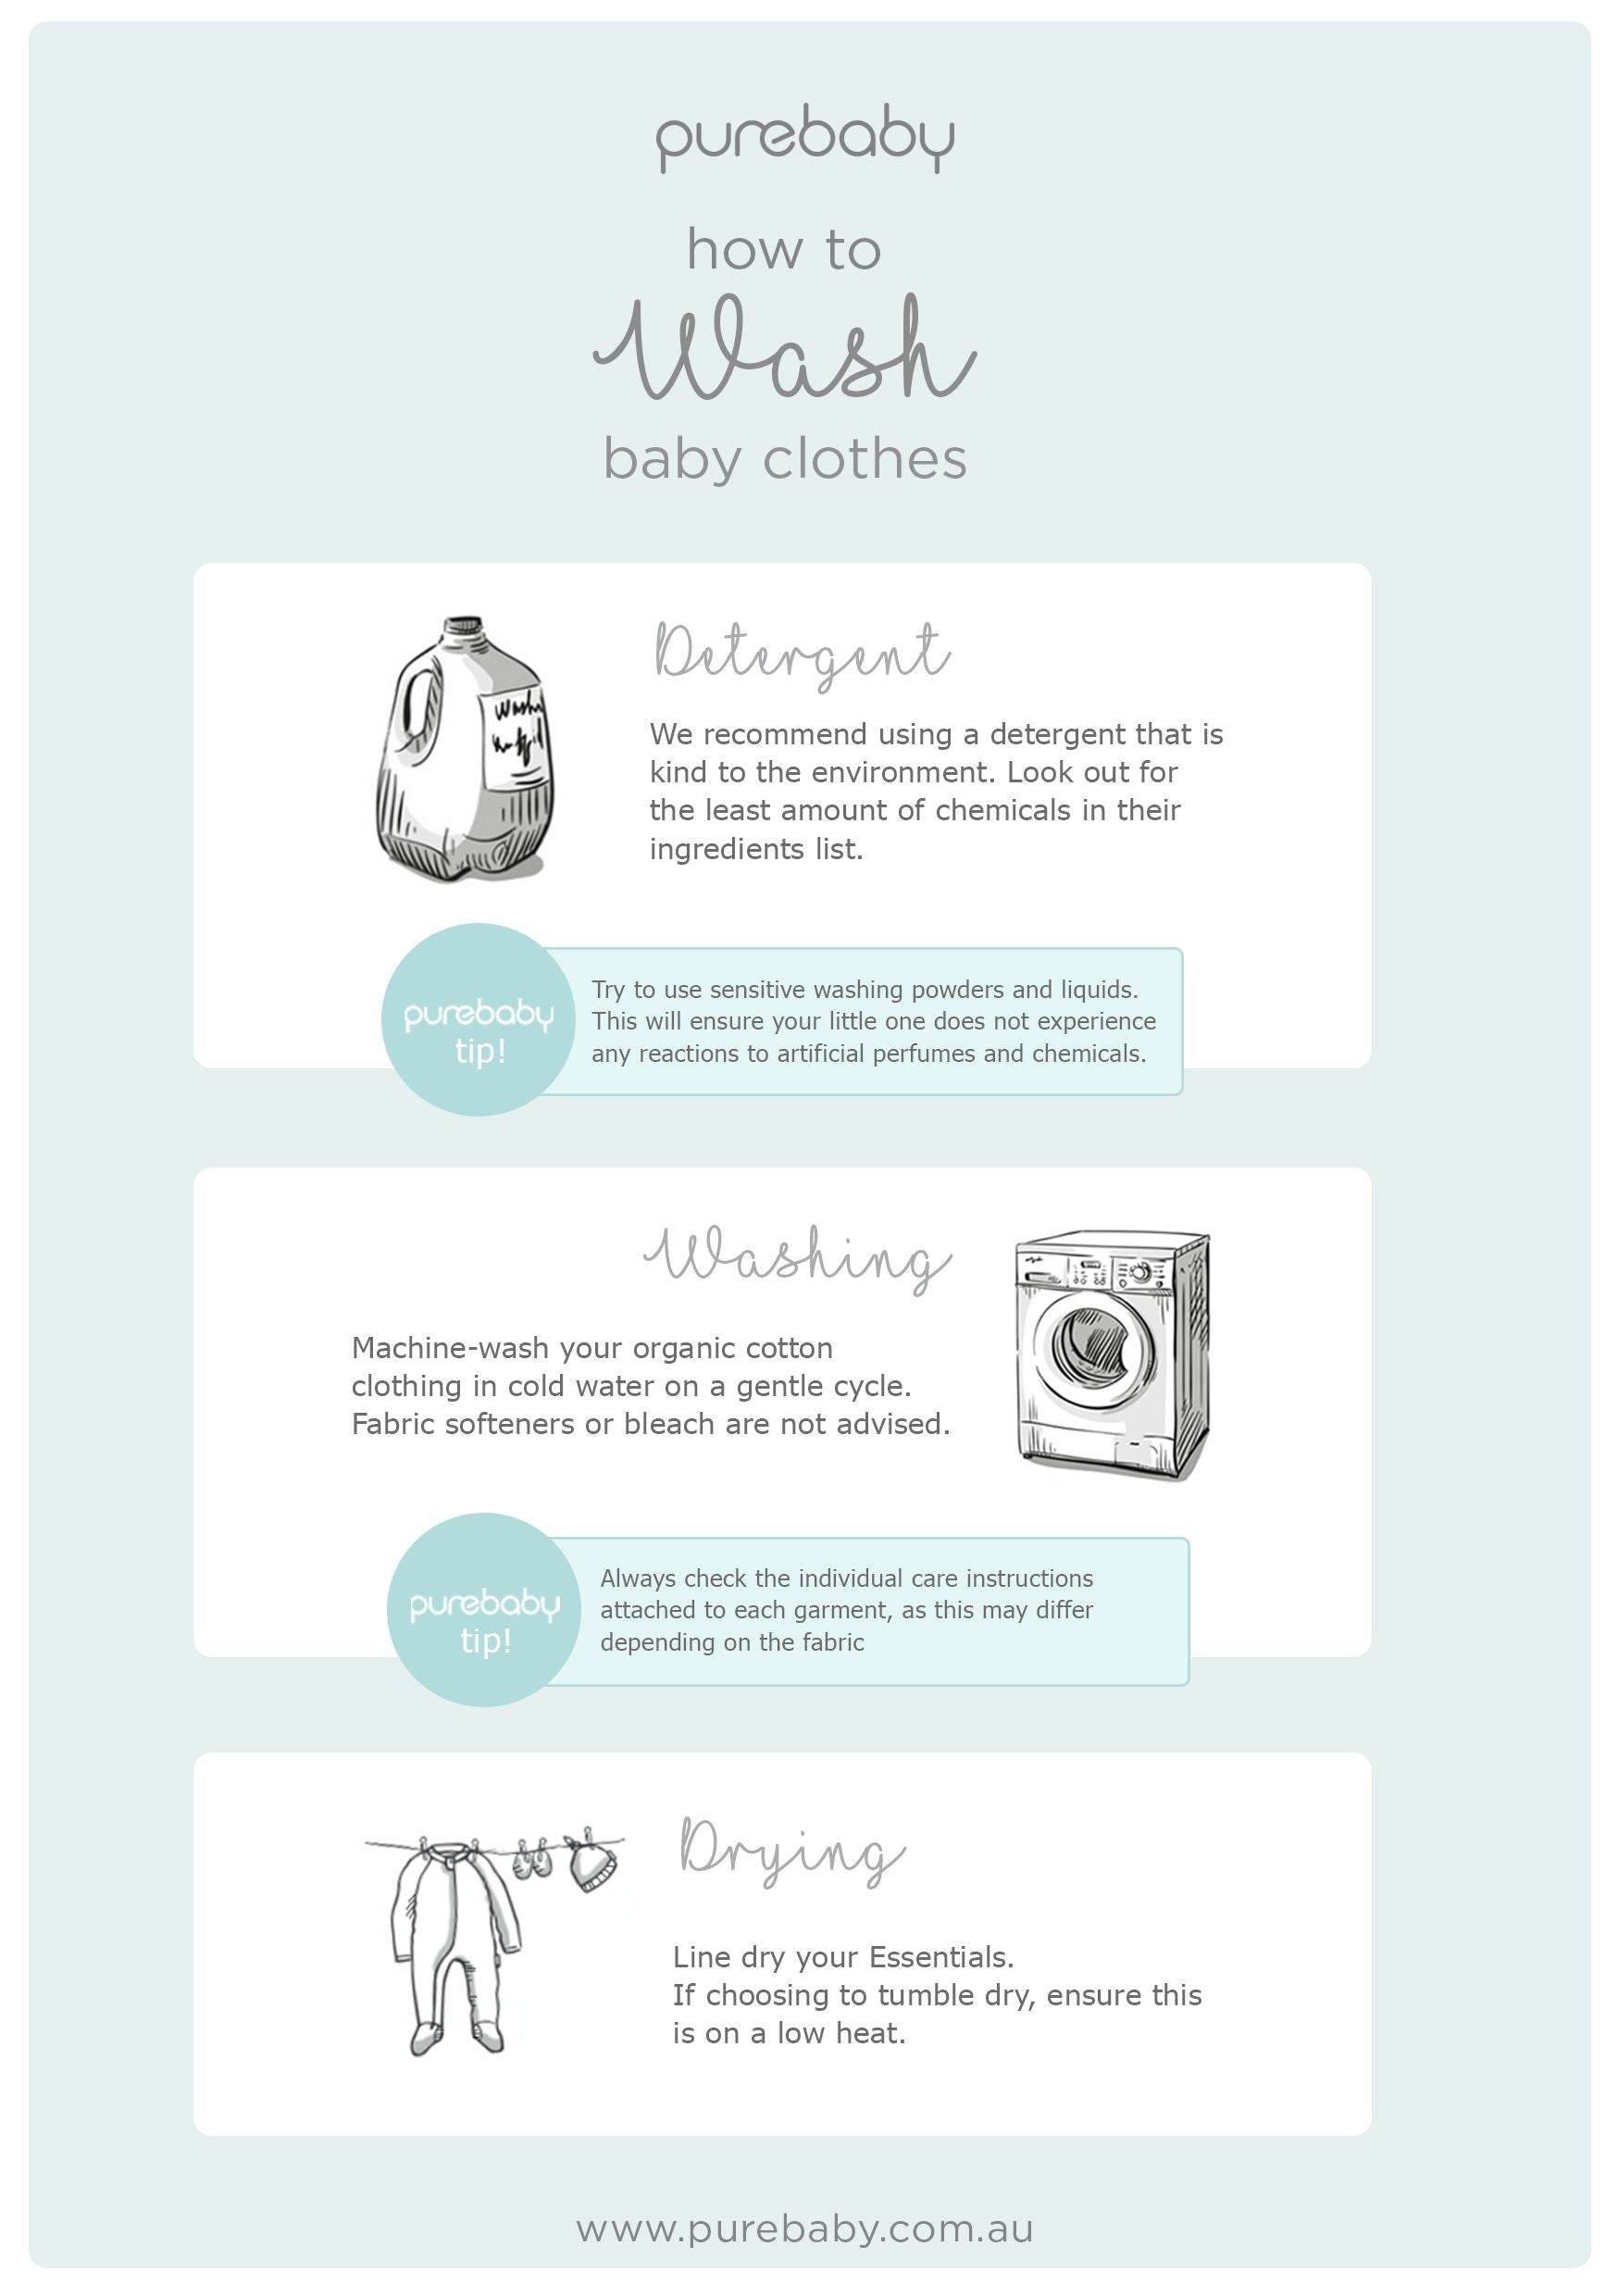 Purebaby How to Wash Baby Clothes